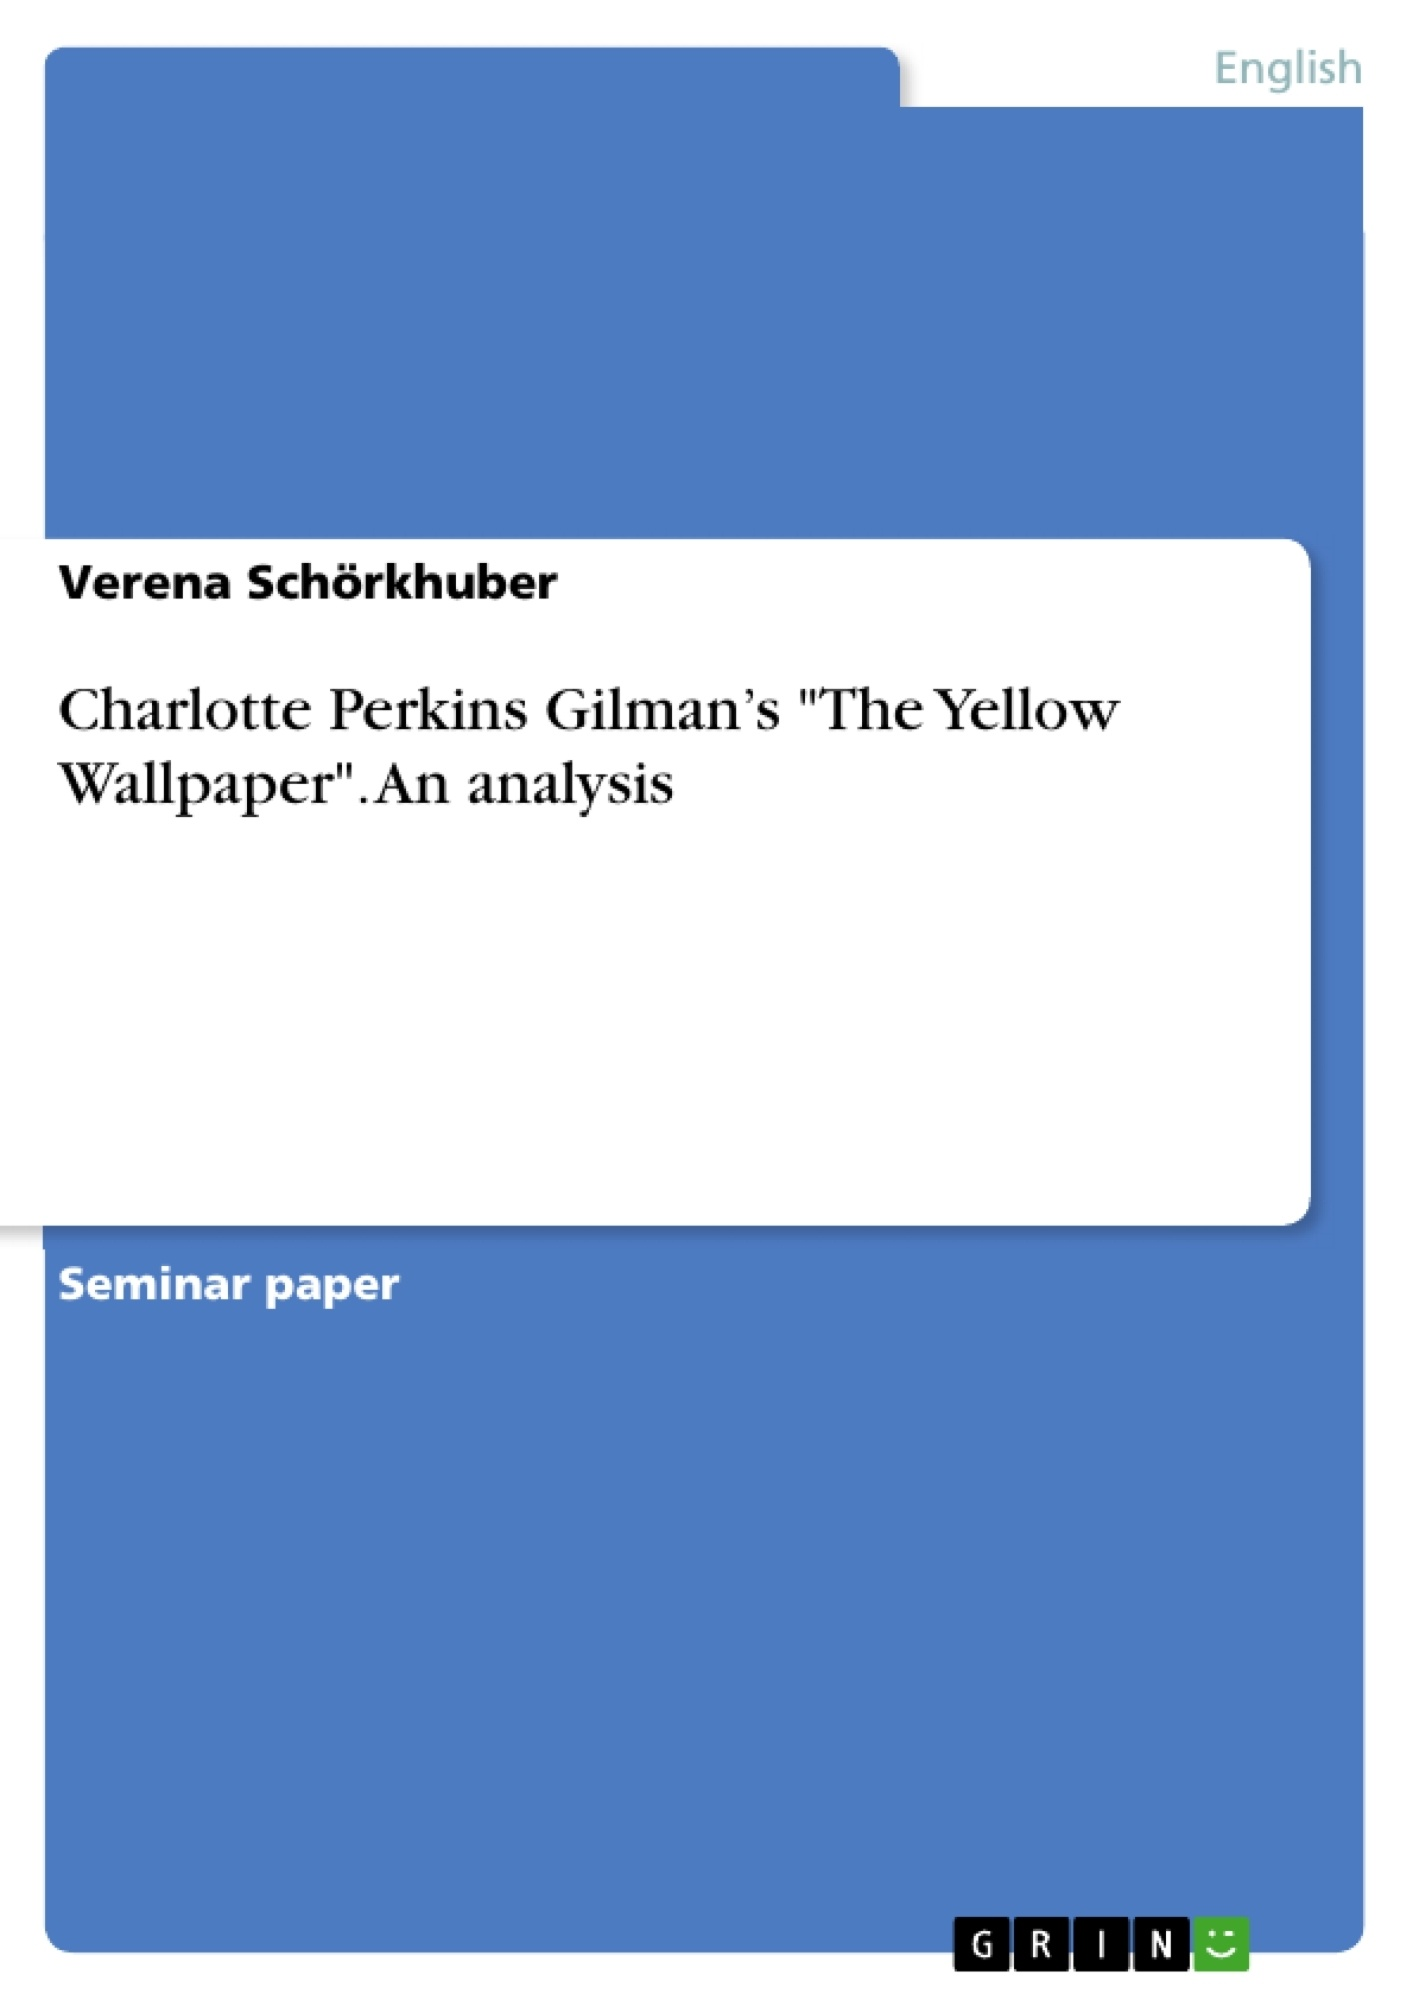 essay on the yellow charlotte perkins gilman s the  charlotte perkins gilman s the yellow an analysis charlotte perkins gilman s the yellow an analysis